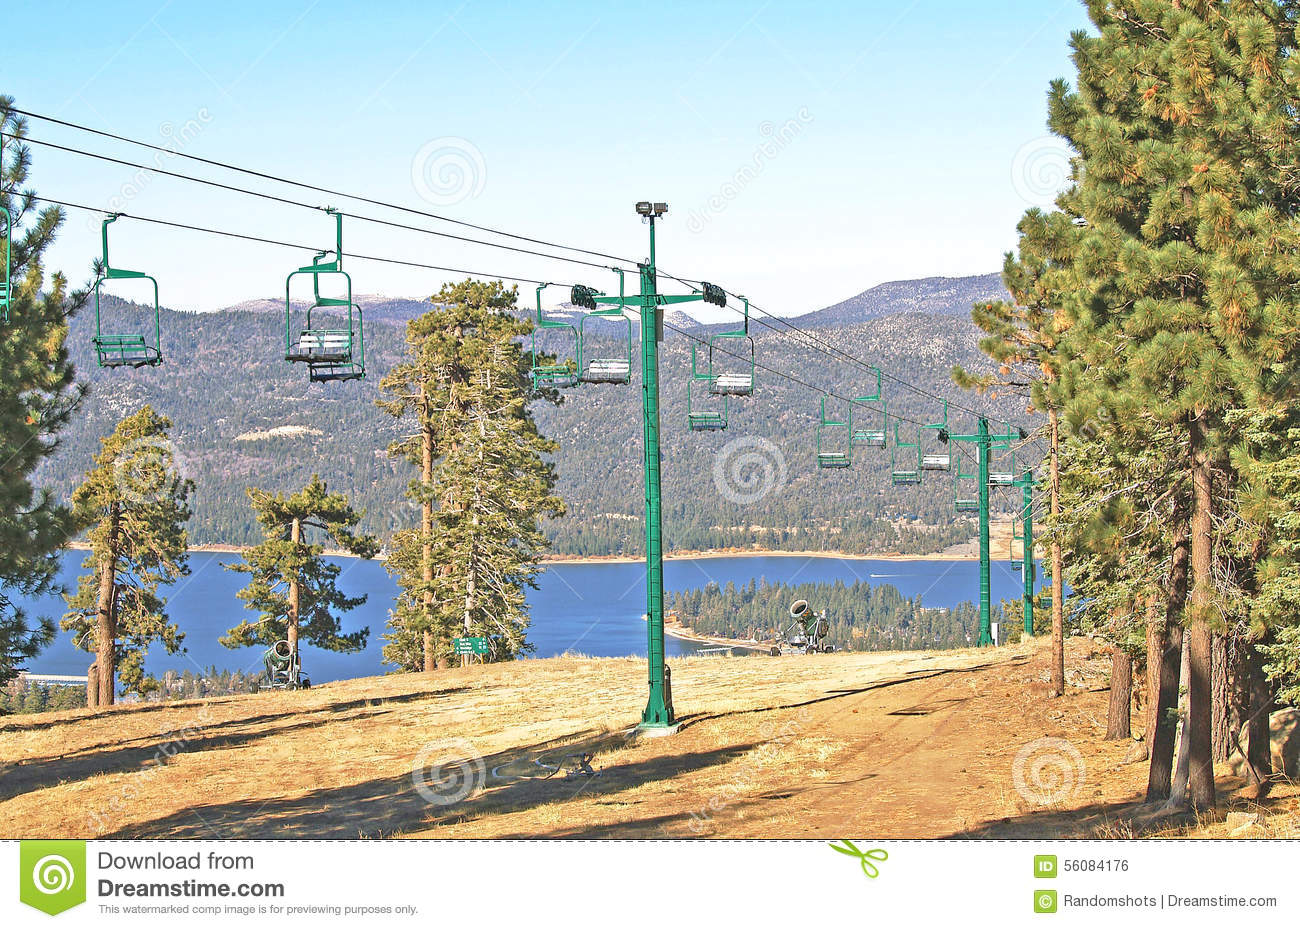 Summit Chair Lift snow summit chair lift stock photo - image: 56084176